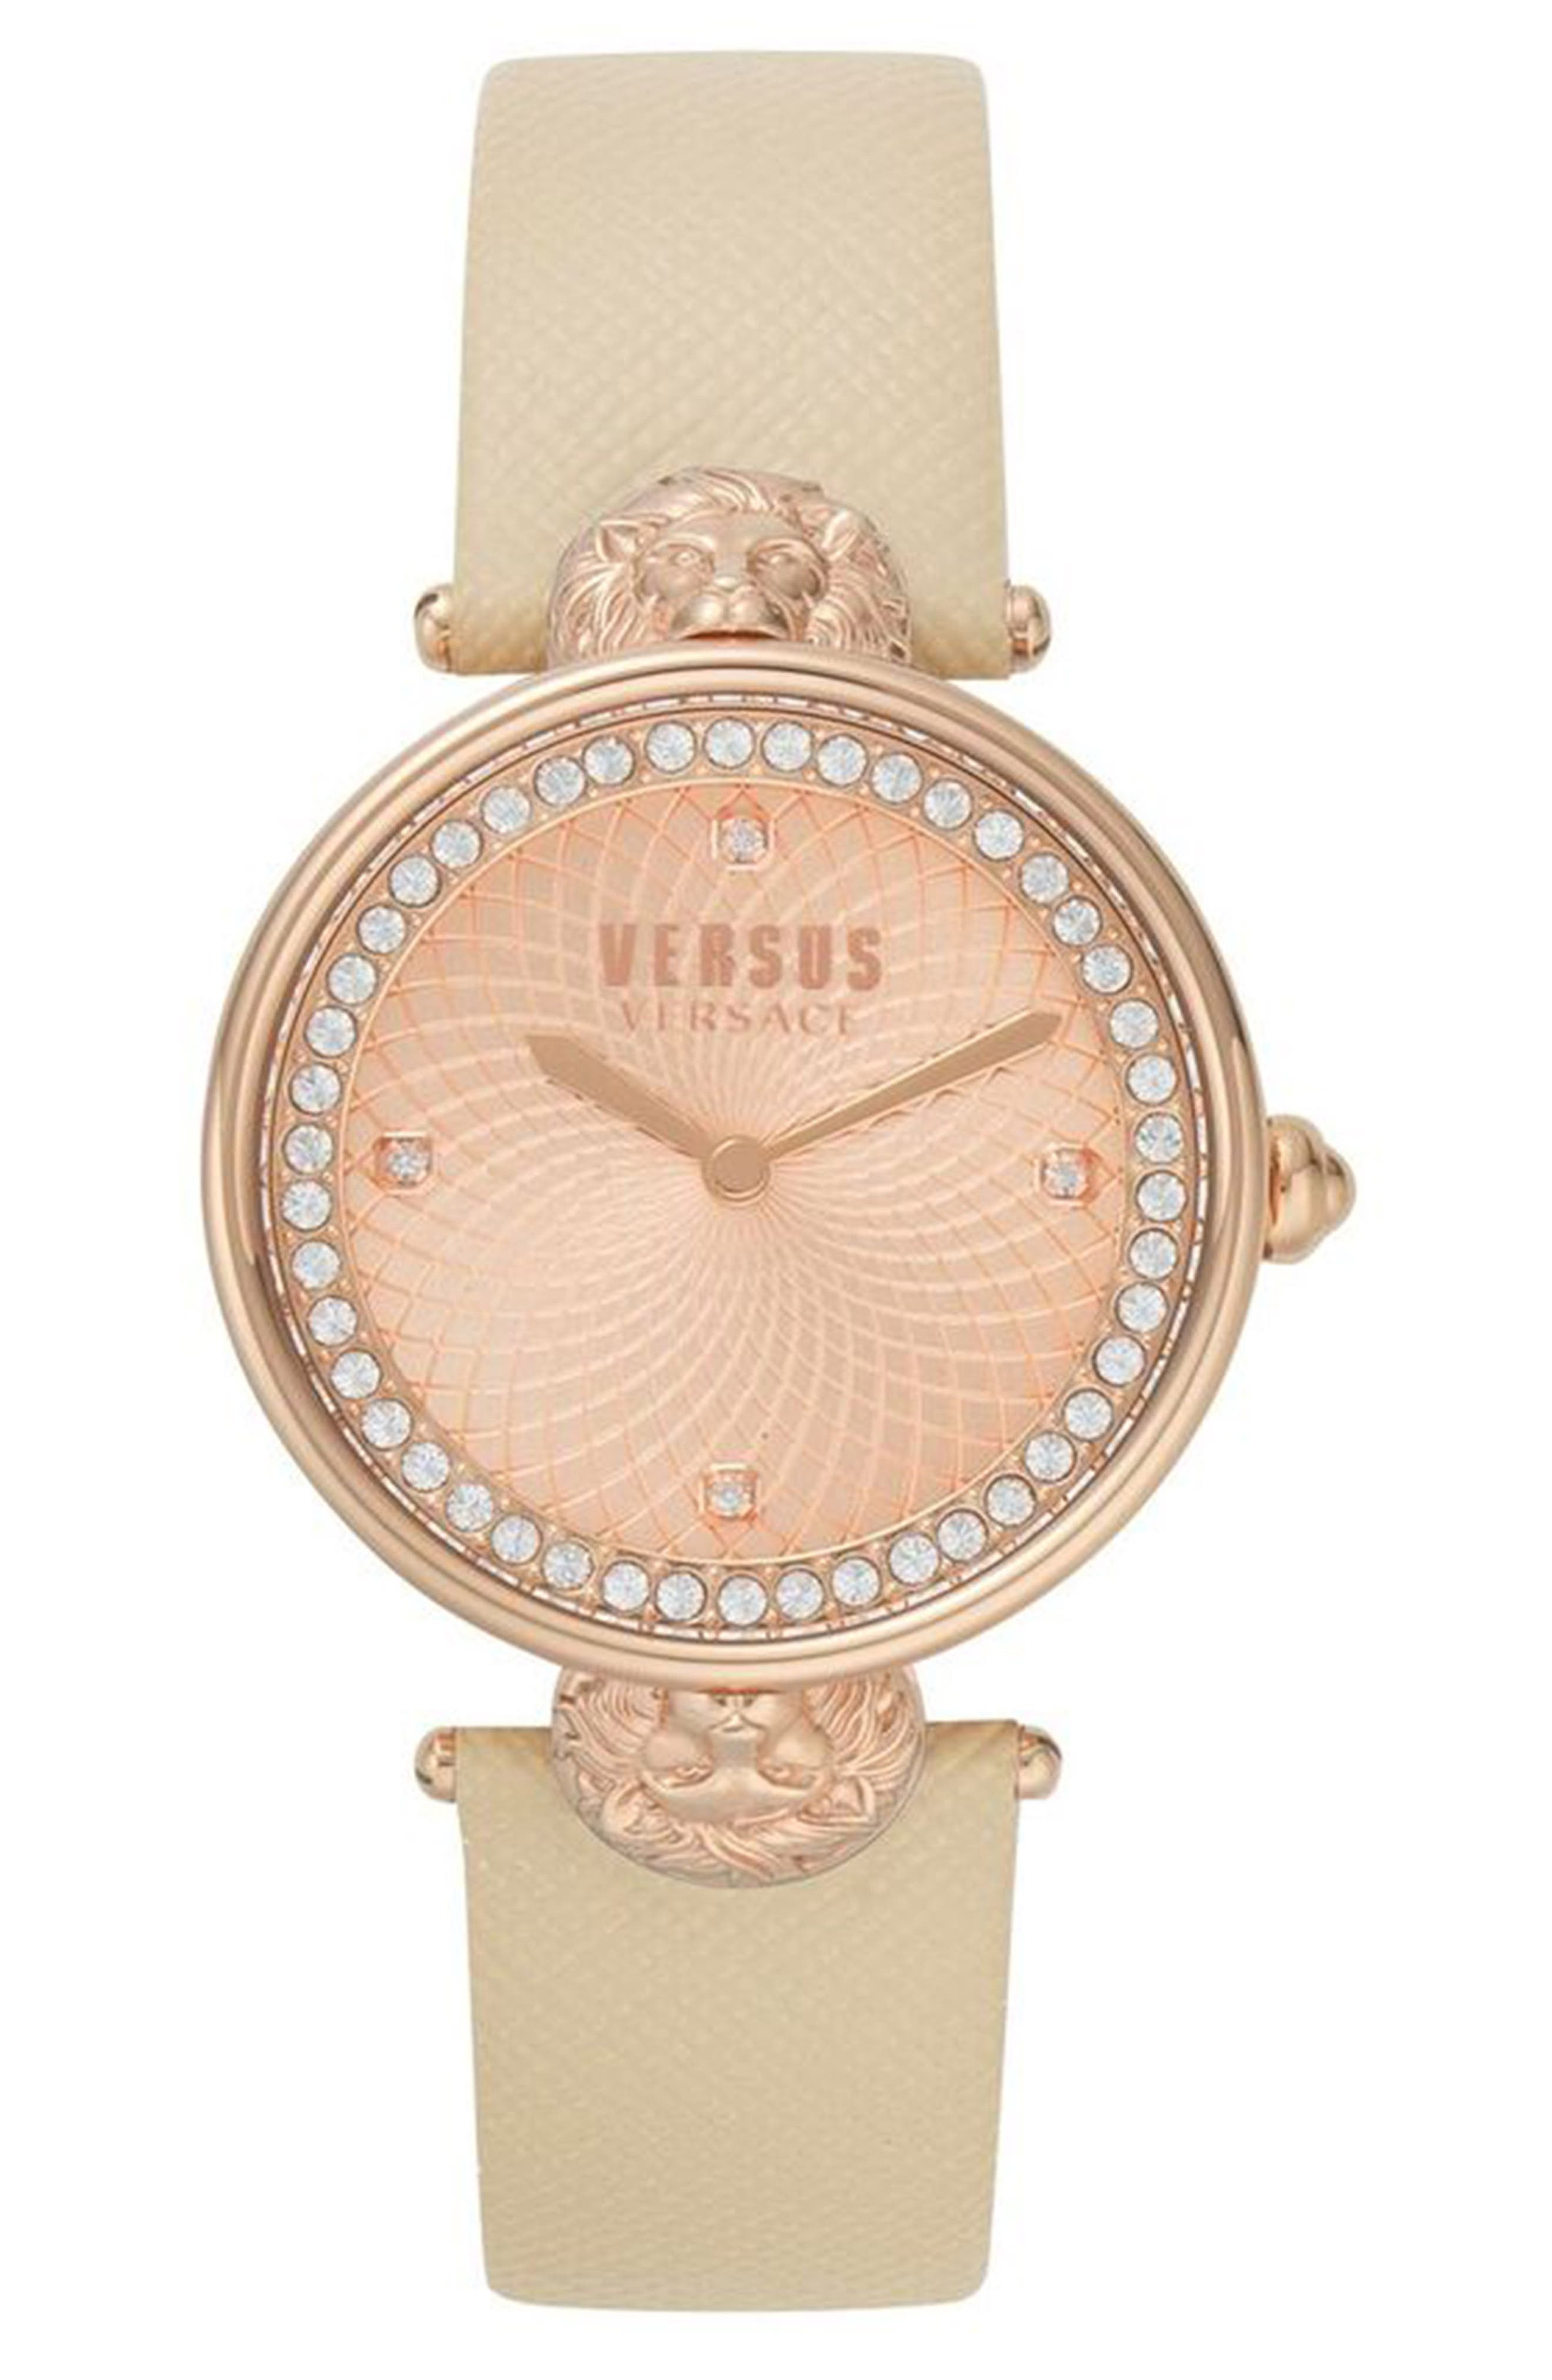 Versus By Versace Victoria Leather Strap Watch, 34mm by Versace